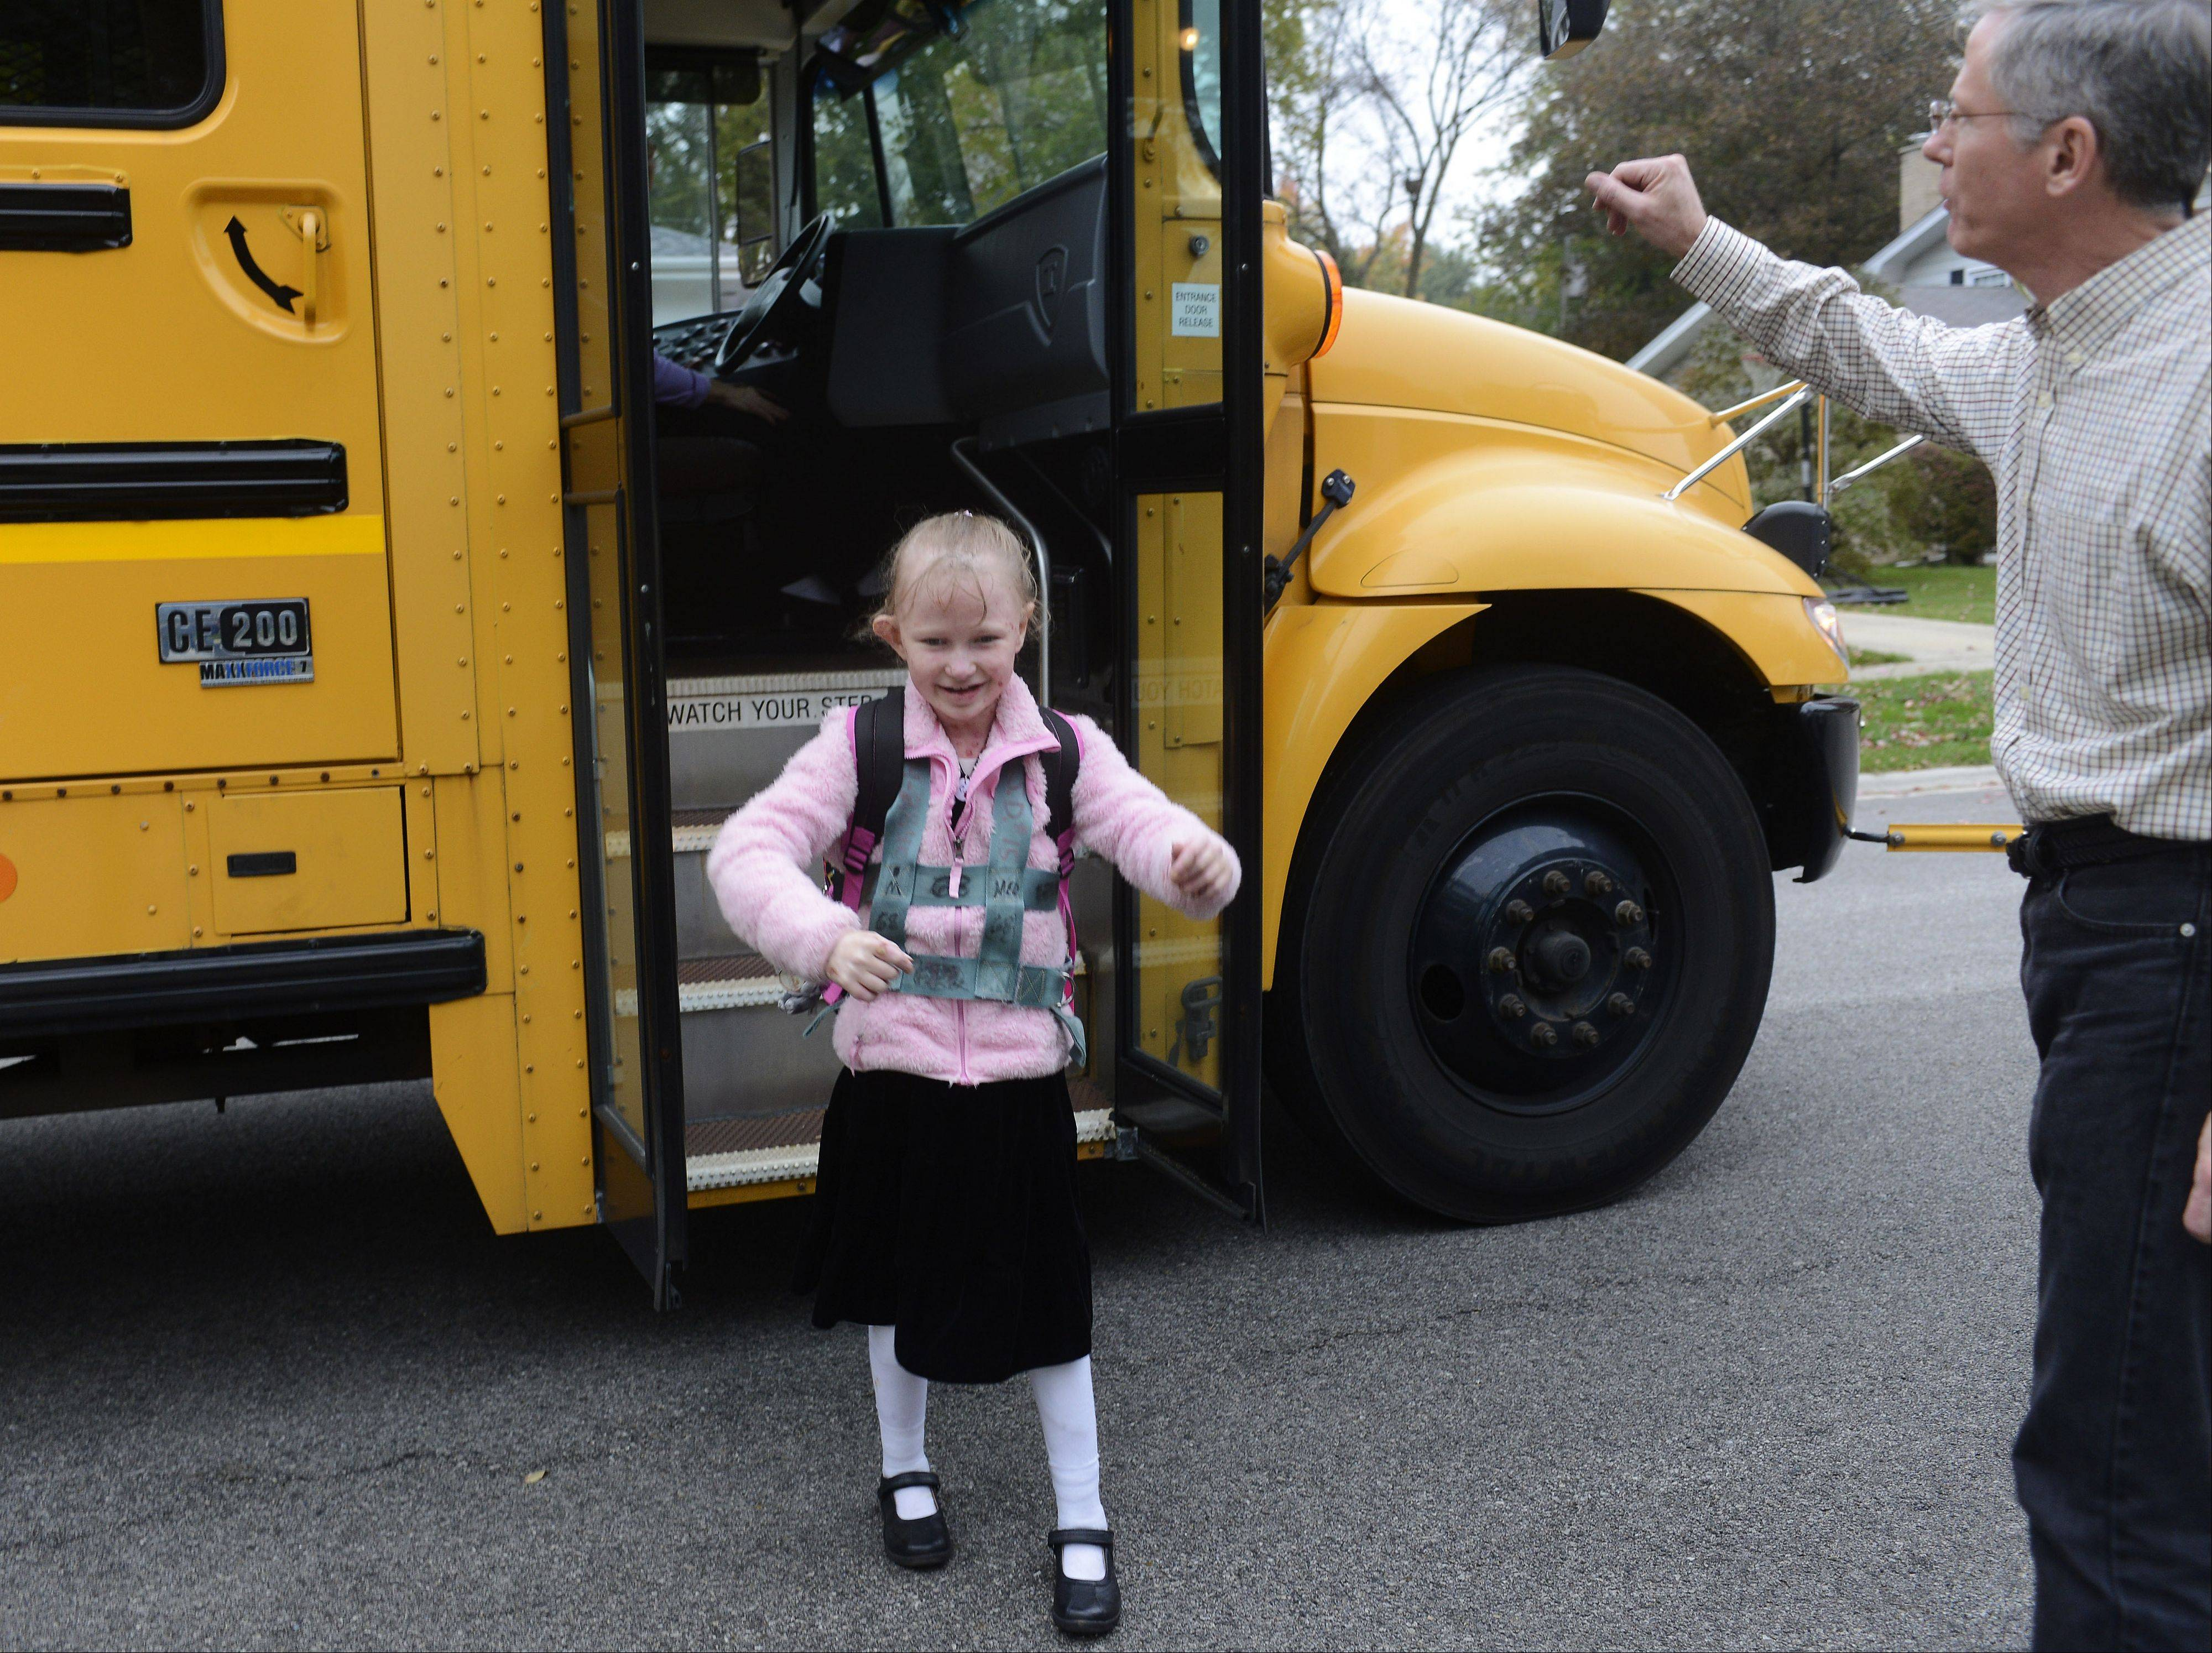 Stepping off the bus after a day of school, Caroline Provost, 8, is greeted by her dad, Pete Provost, outside their Palatine home.